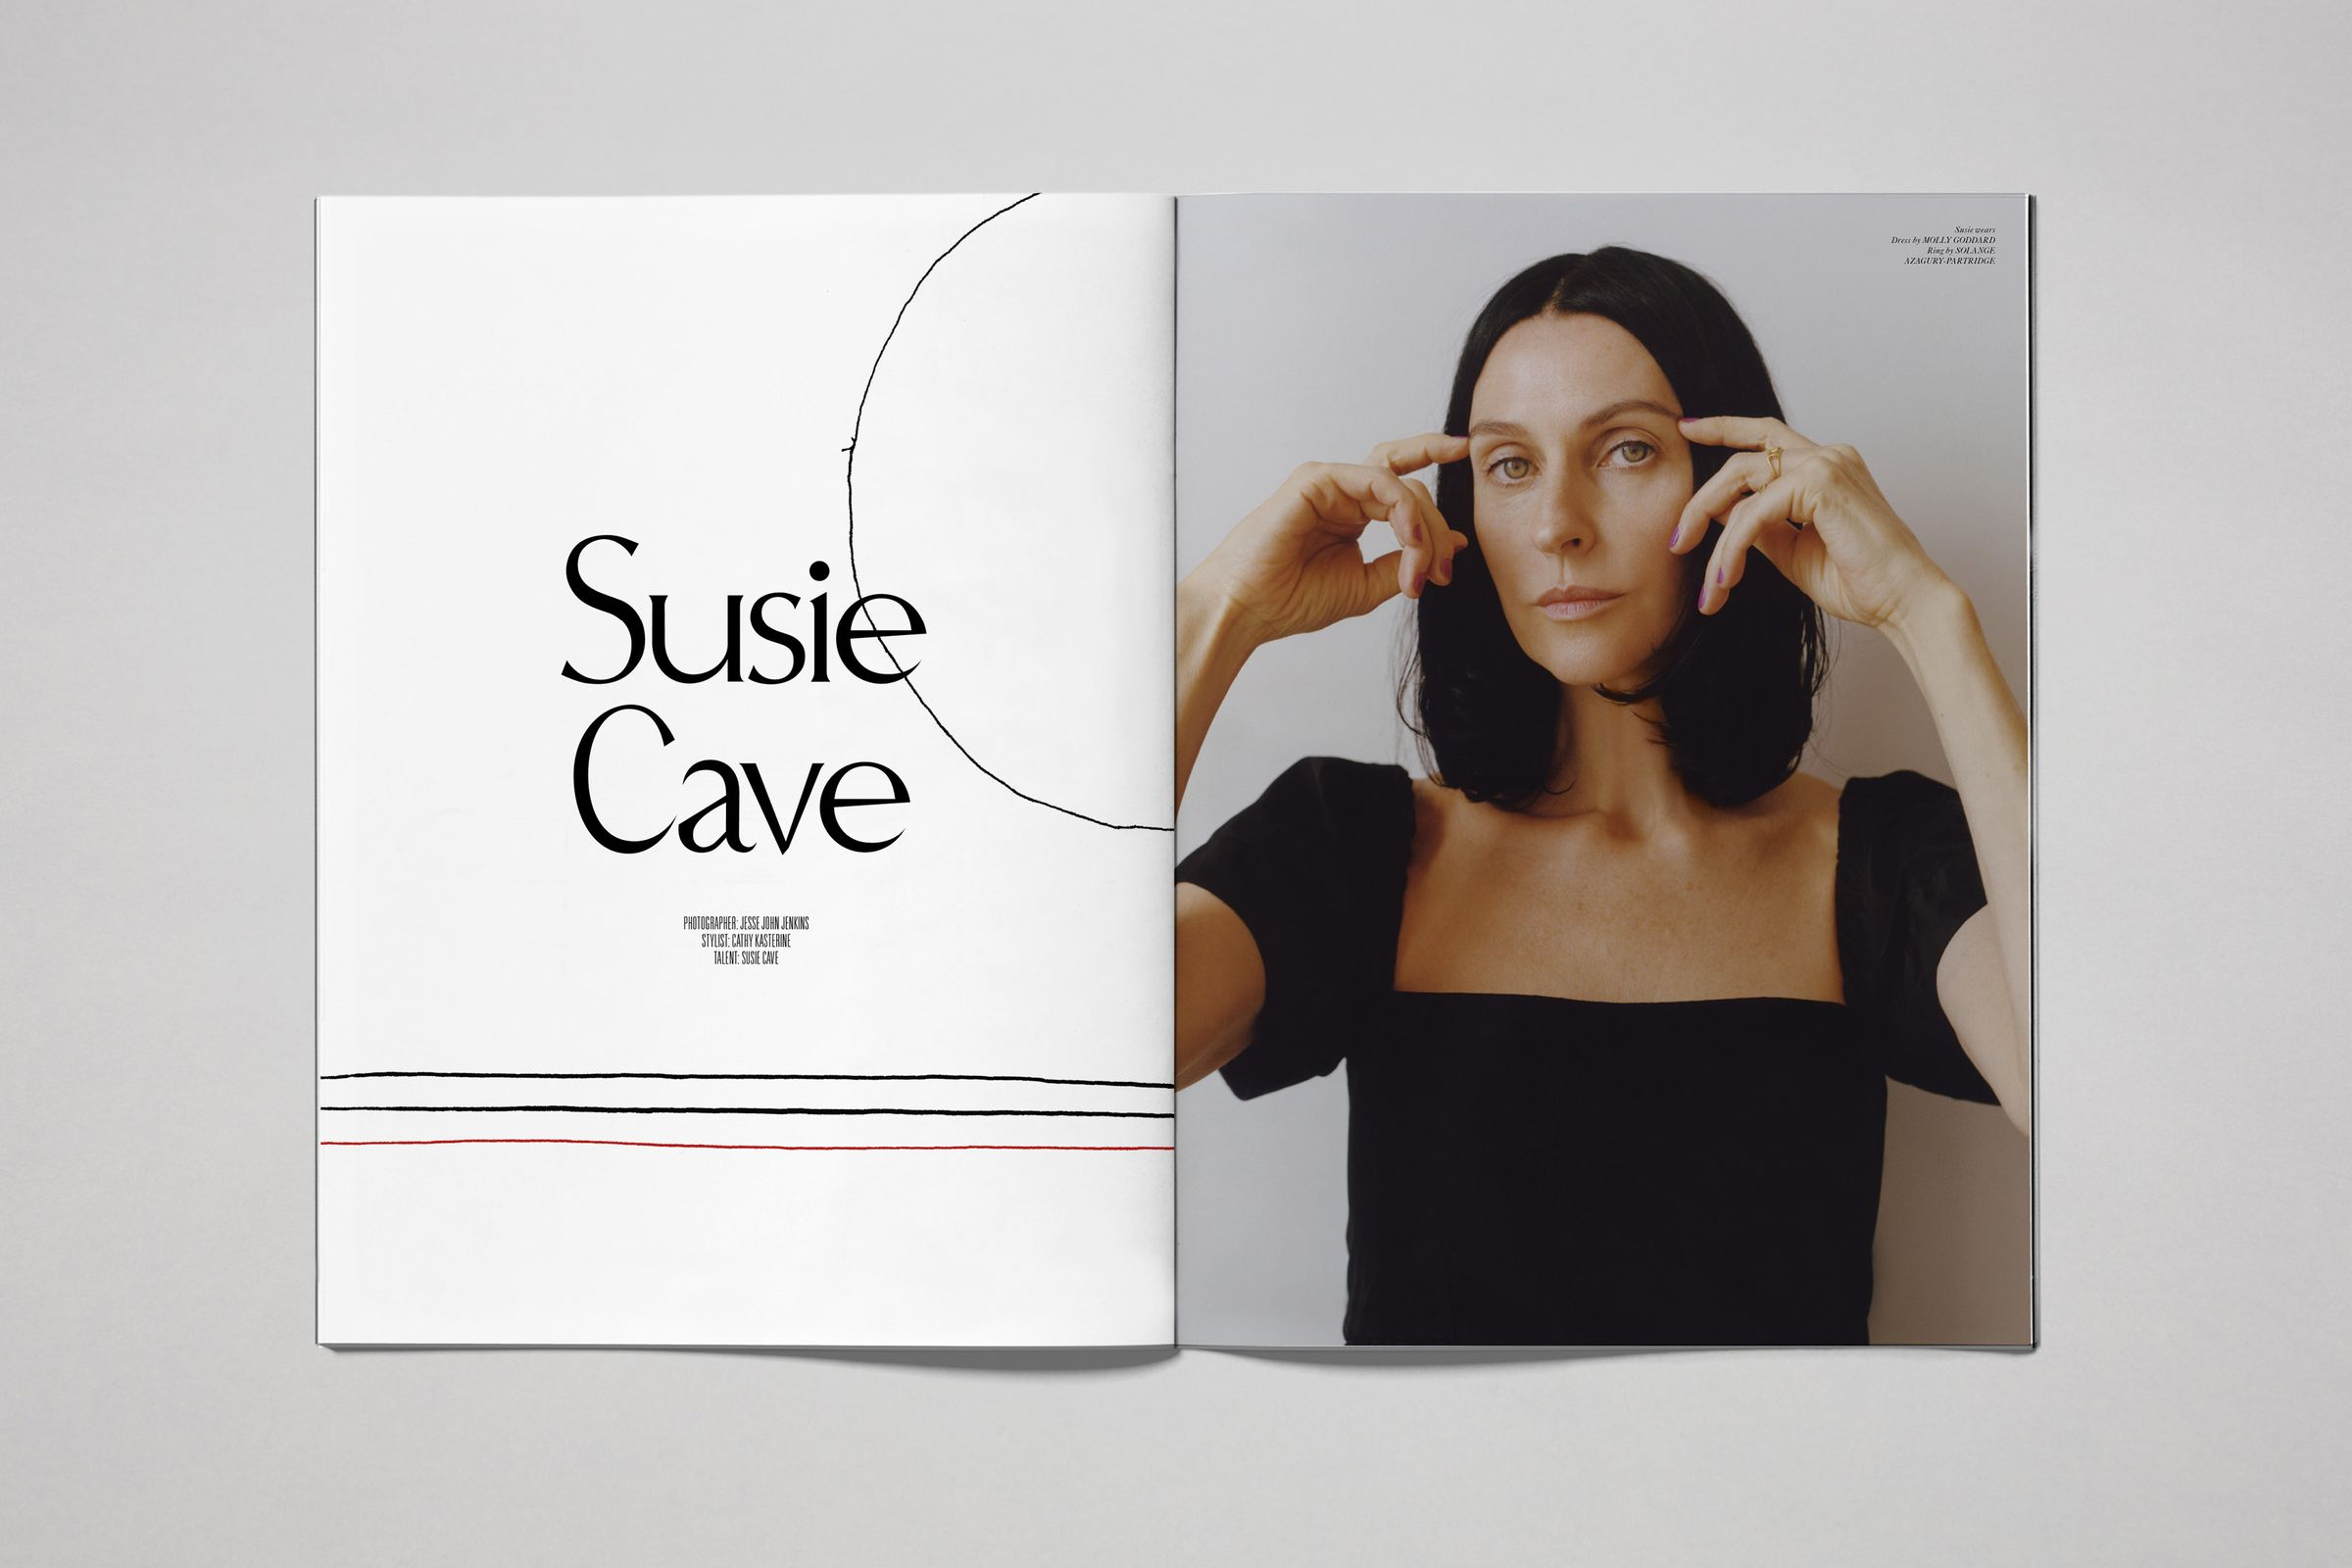 Rika Magazine issue no. 15 Susie Cave photographed by Jesse John Jenkins